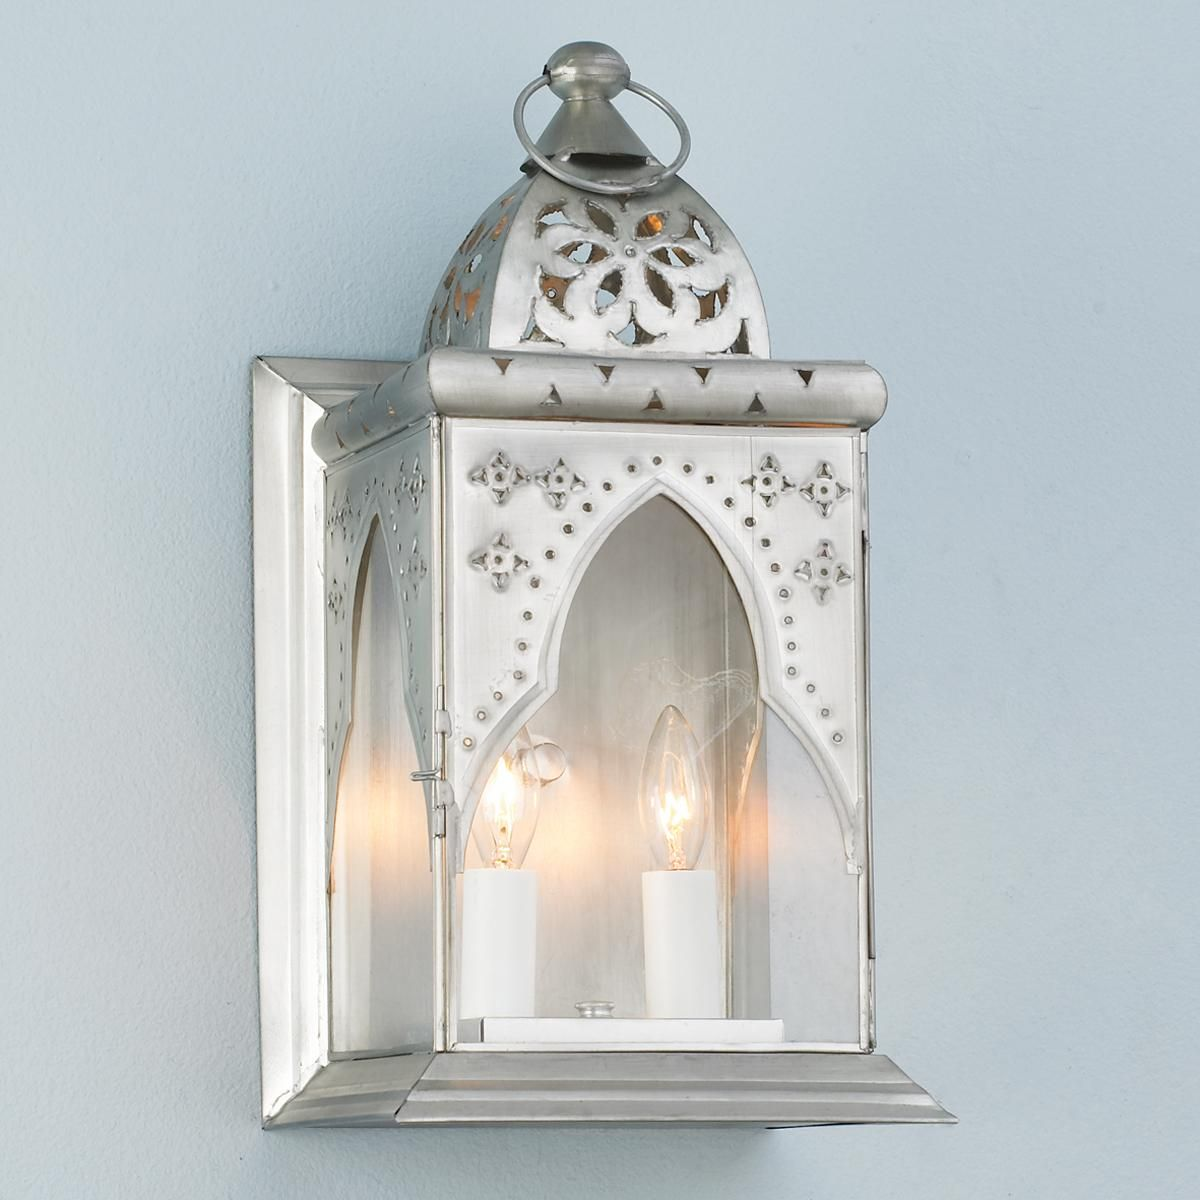 Moroccan Arch Wall Lantern Sconce 179 Wall Lantern Sconce Shades Candle Wall Sconces